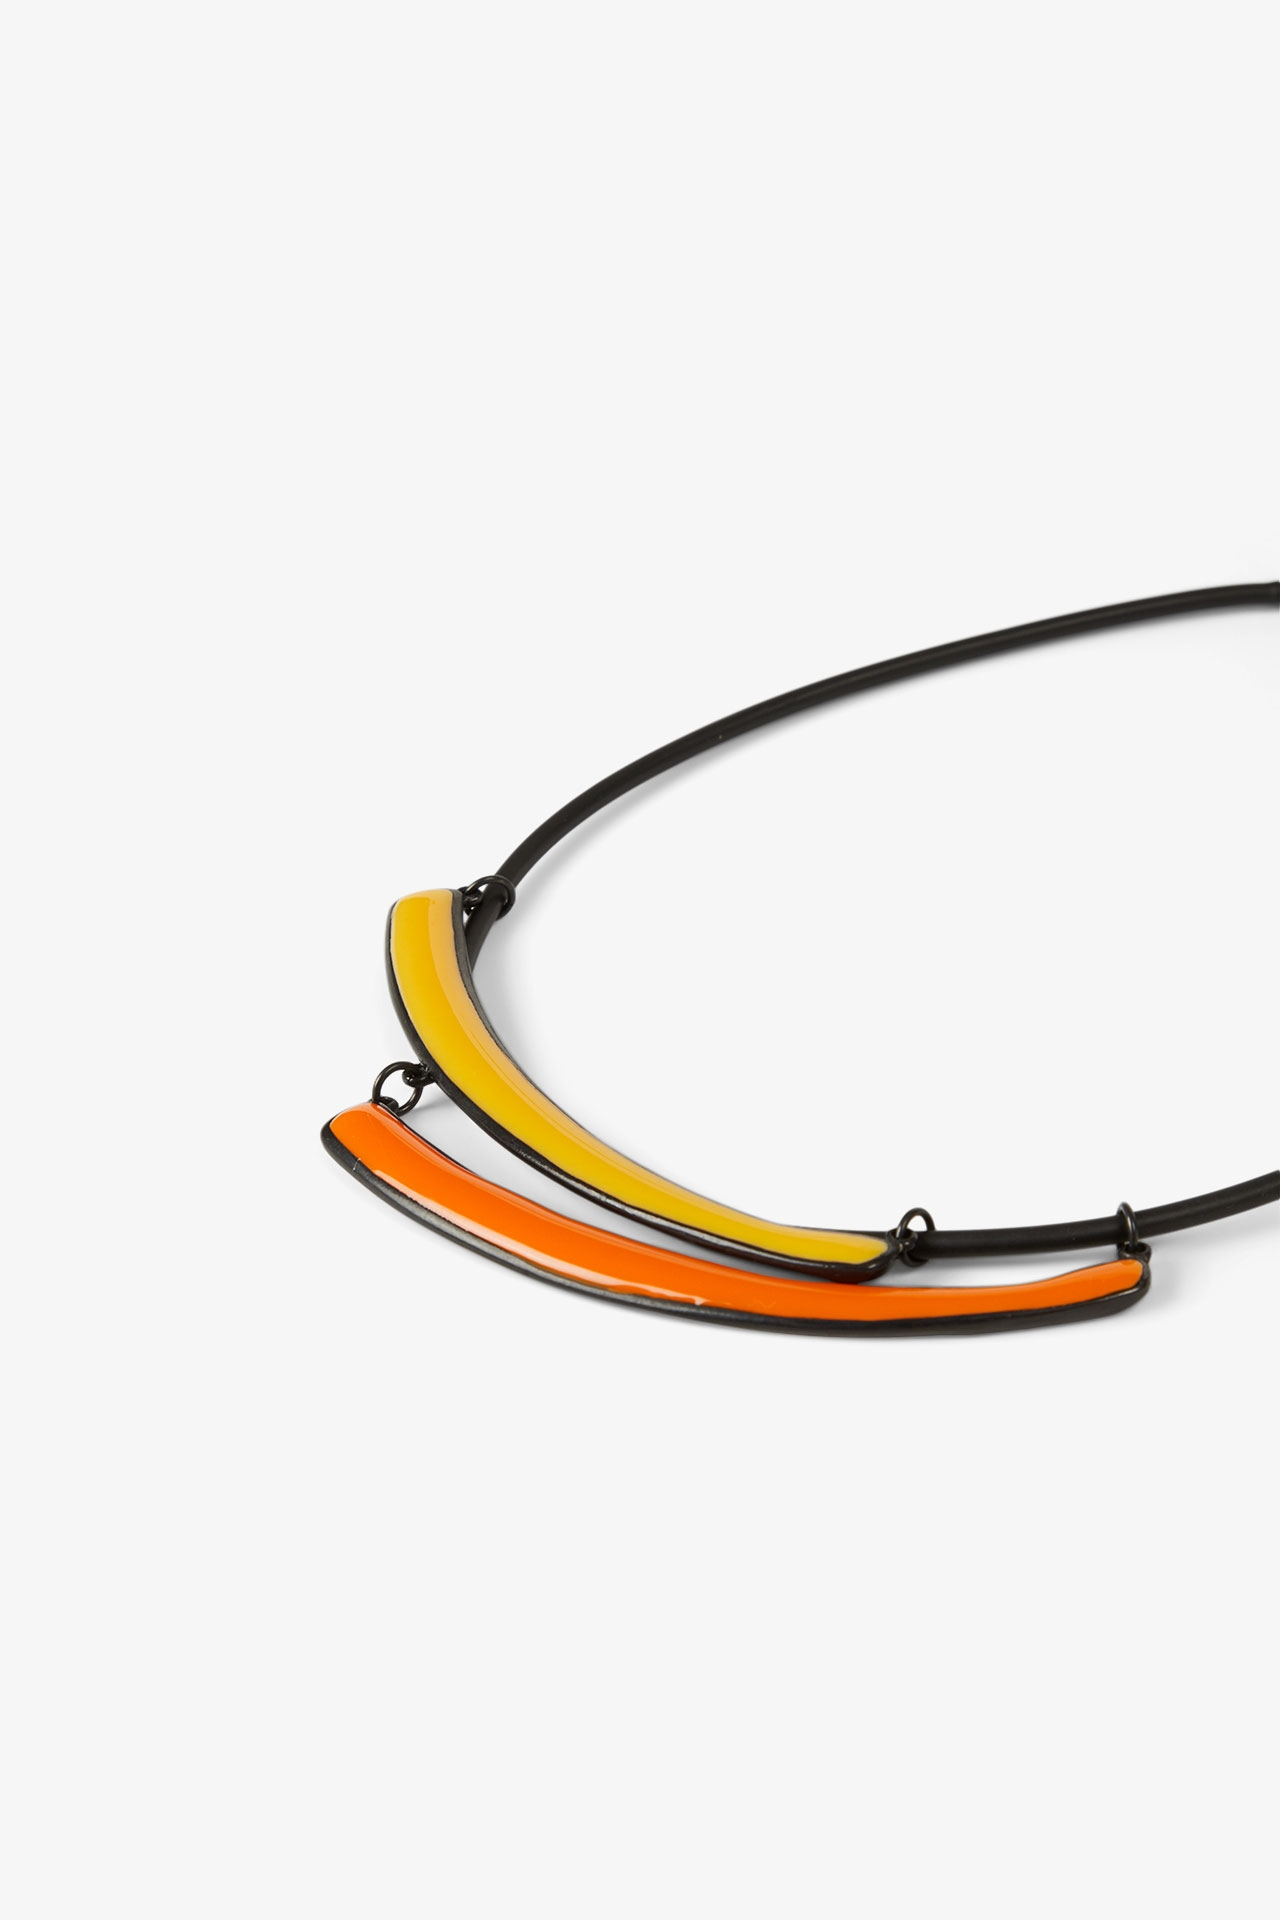 Collier 2 virgules - Thierry Joo - Jaune foncé et Orange